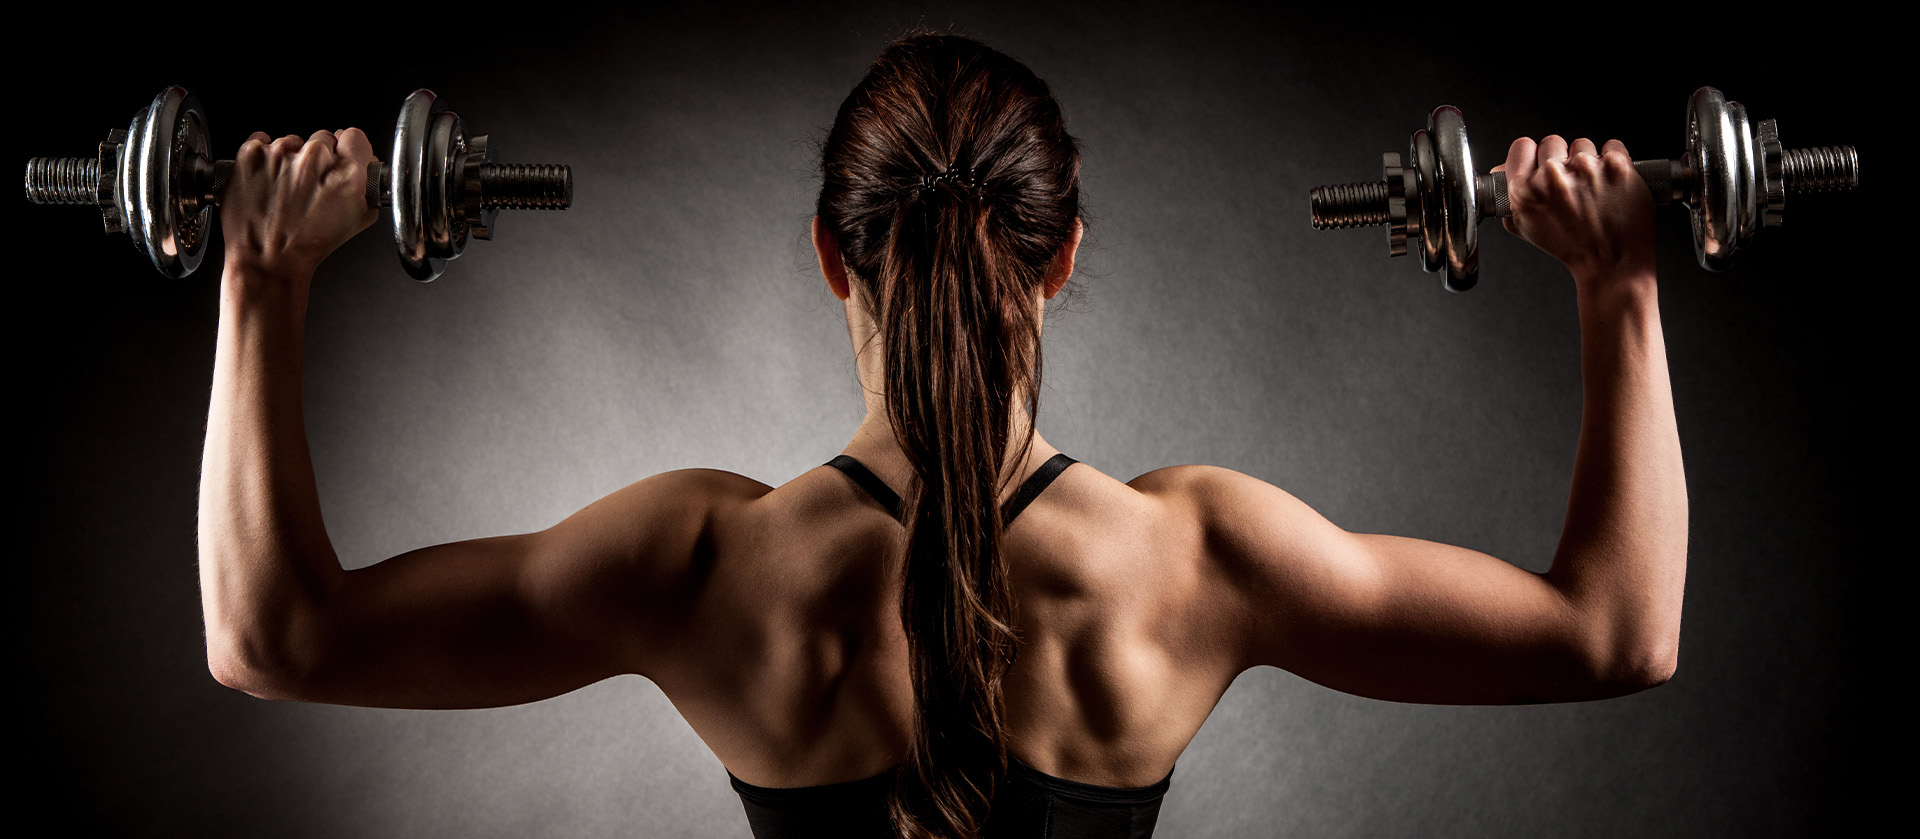 a female athlete with dumbbells in her hands showing her back muscles